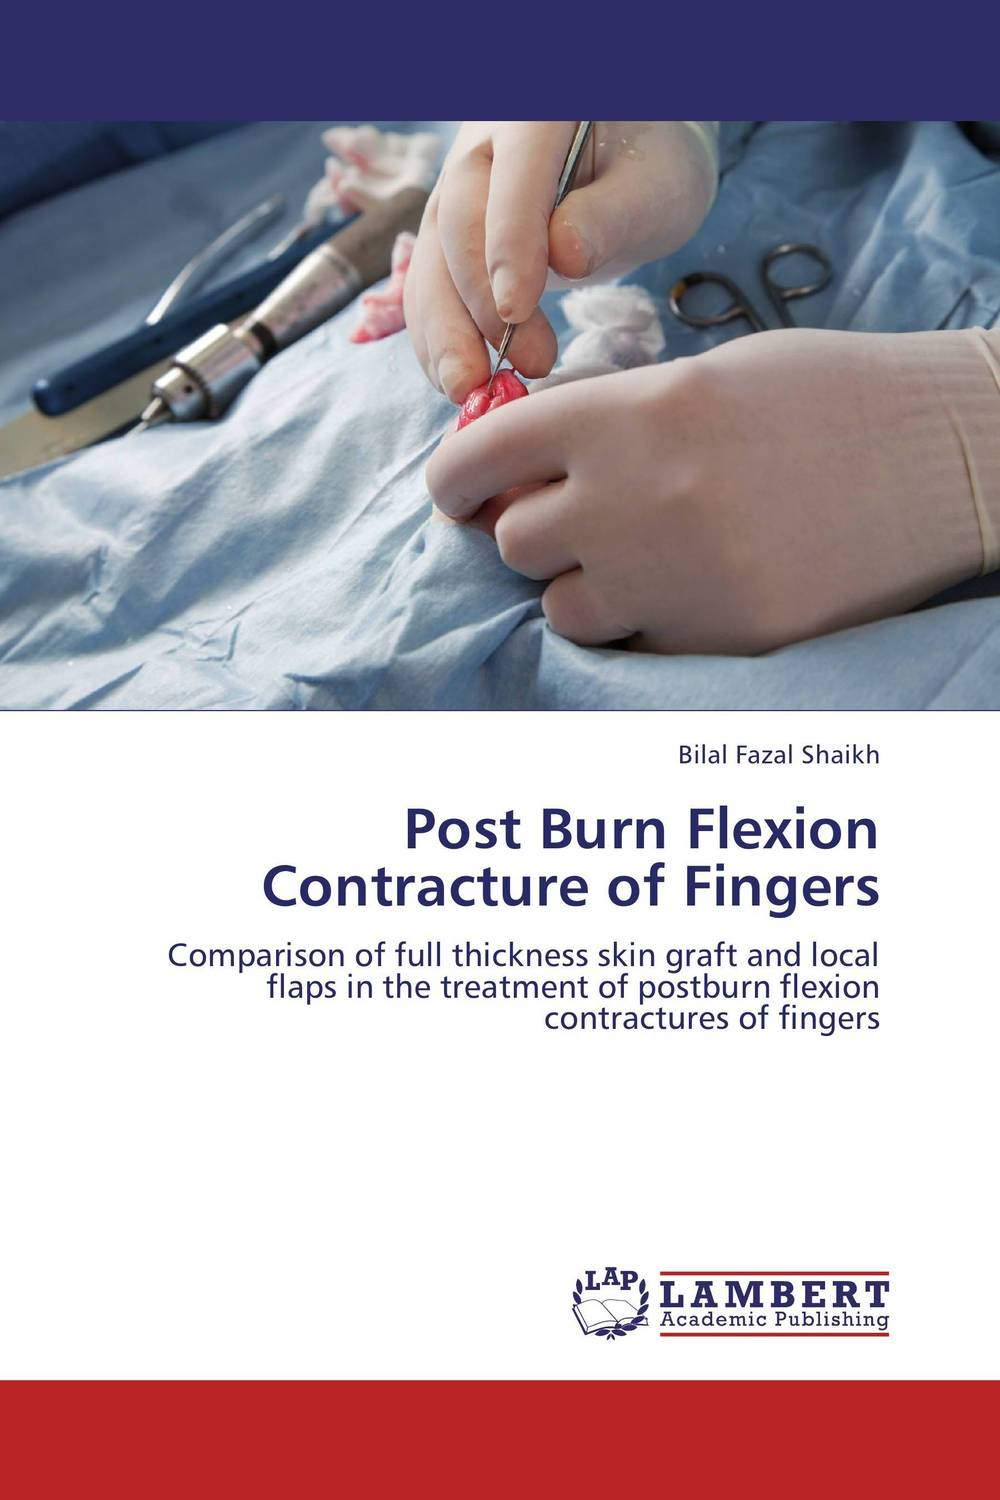 Post Burn Flexion Contracture of Fingers postmortem epidemiological profile of burn cases